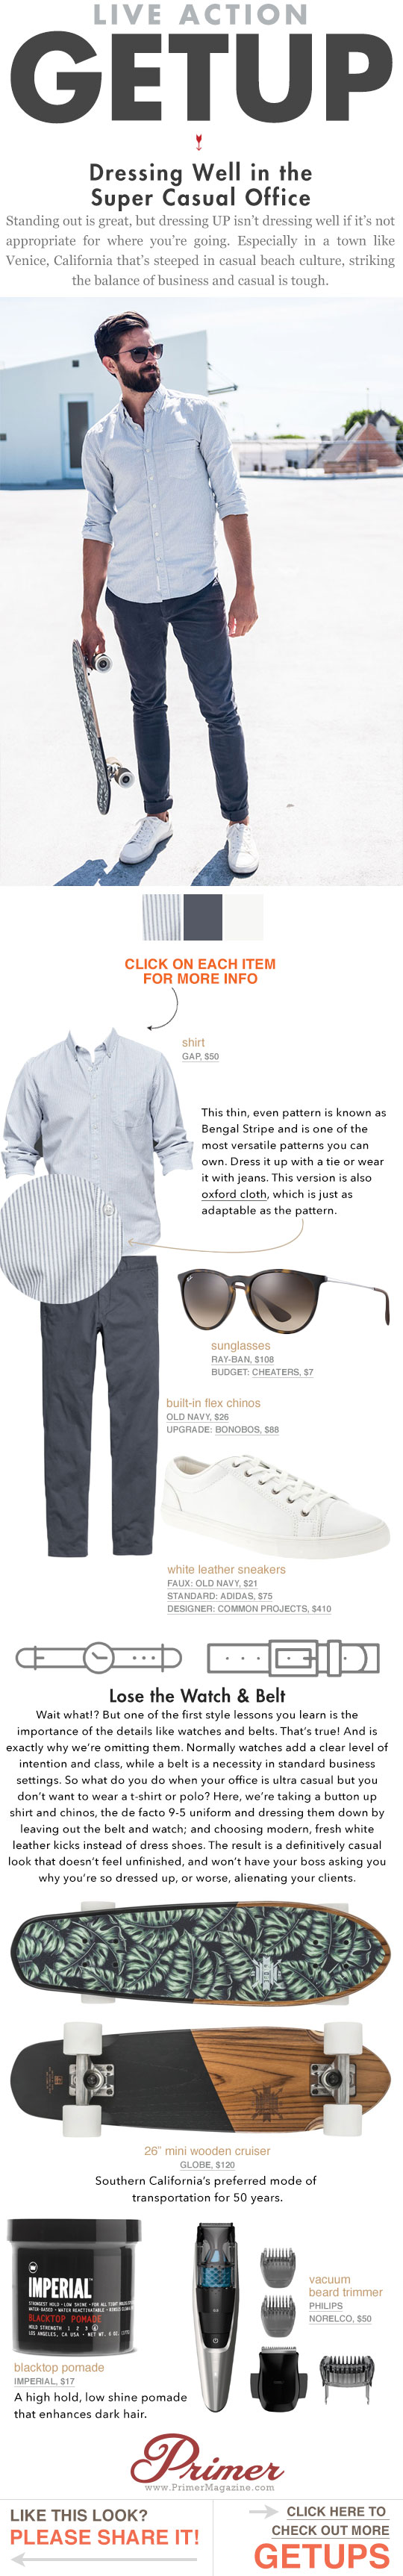 The Getup: Dressing Well in the Super Casual Office   Men's Style